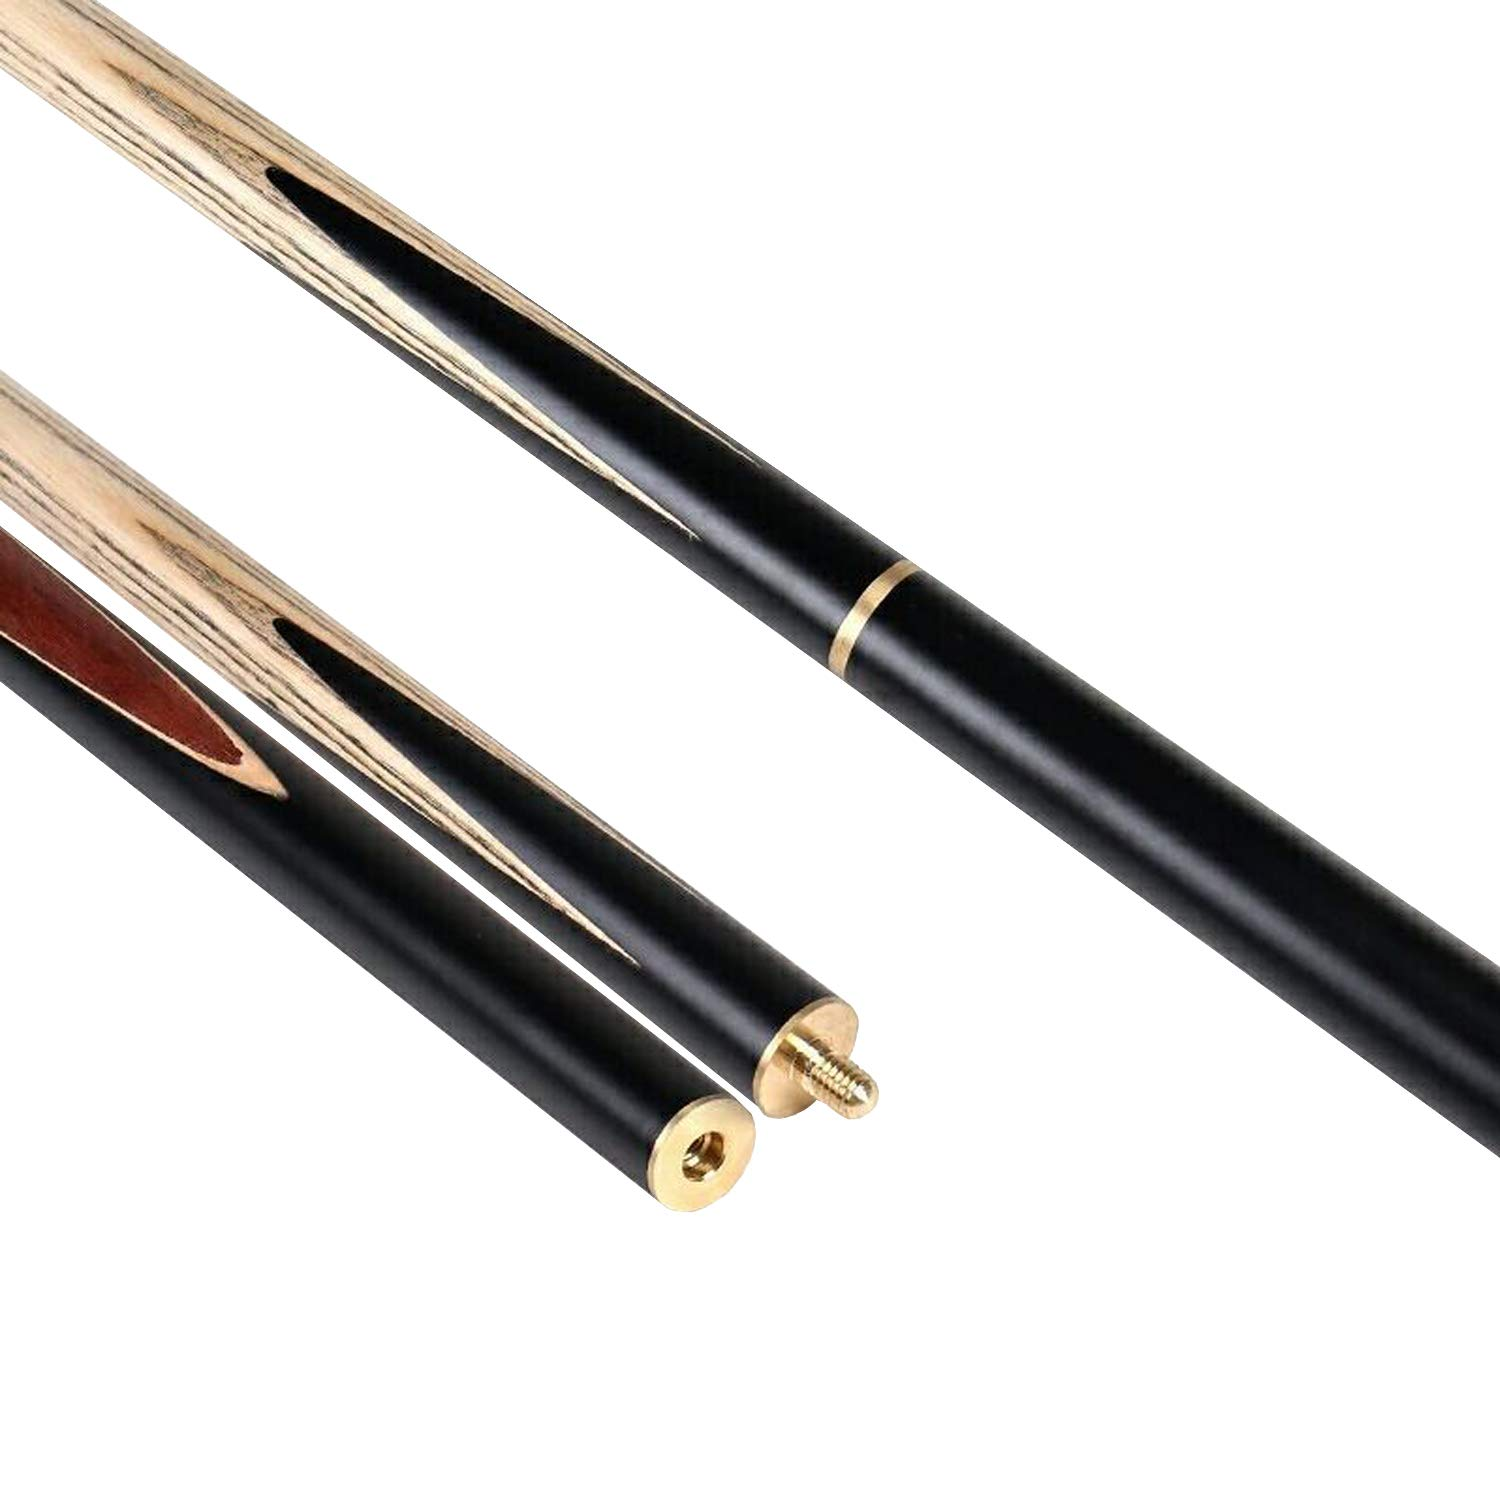 AONETIGER Handmade Snooker Cue Tips 9.7mm 3//4 Jointed 2 Piece 19oz Ash Shaft Pool Billiards Stick